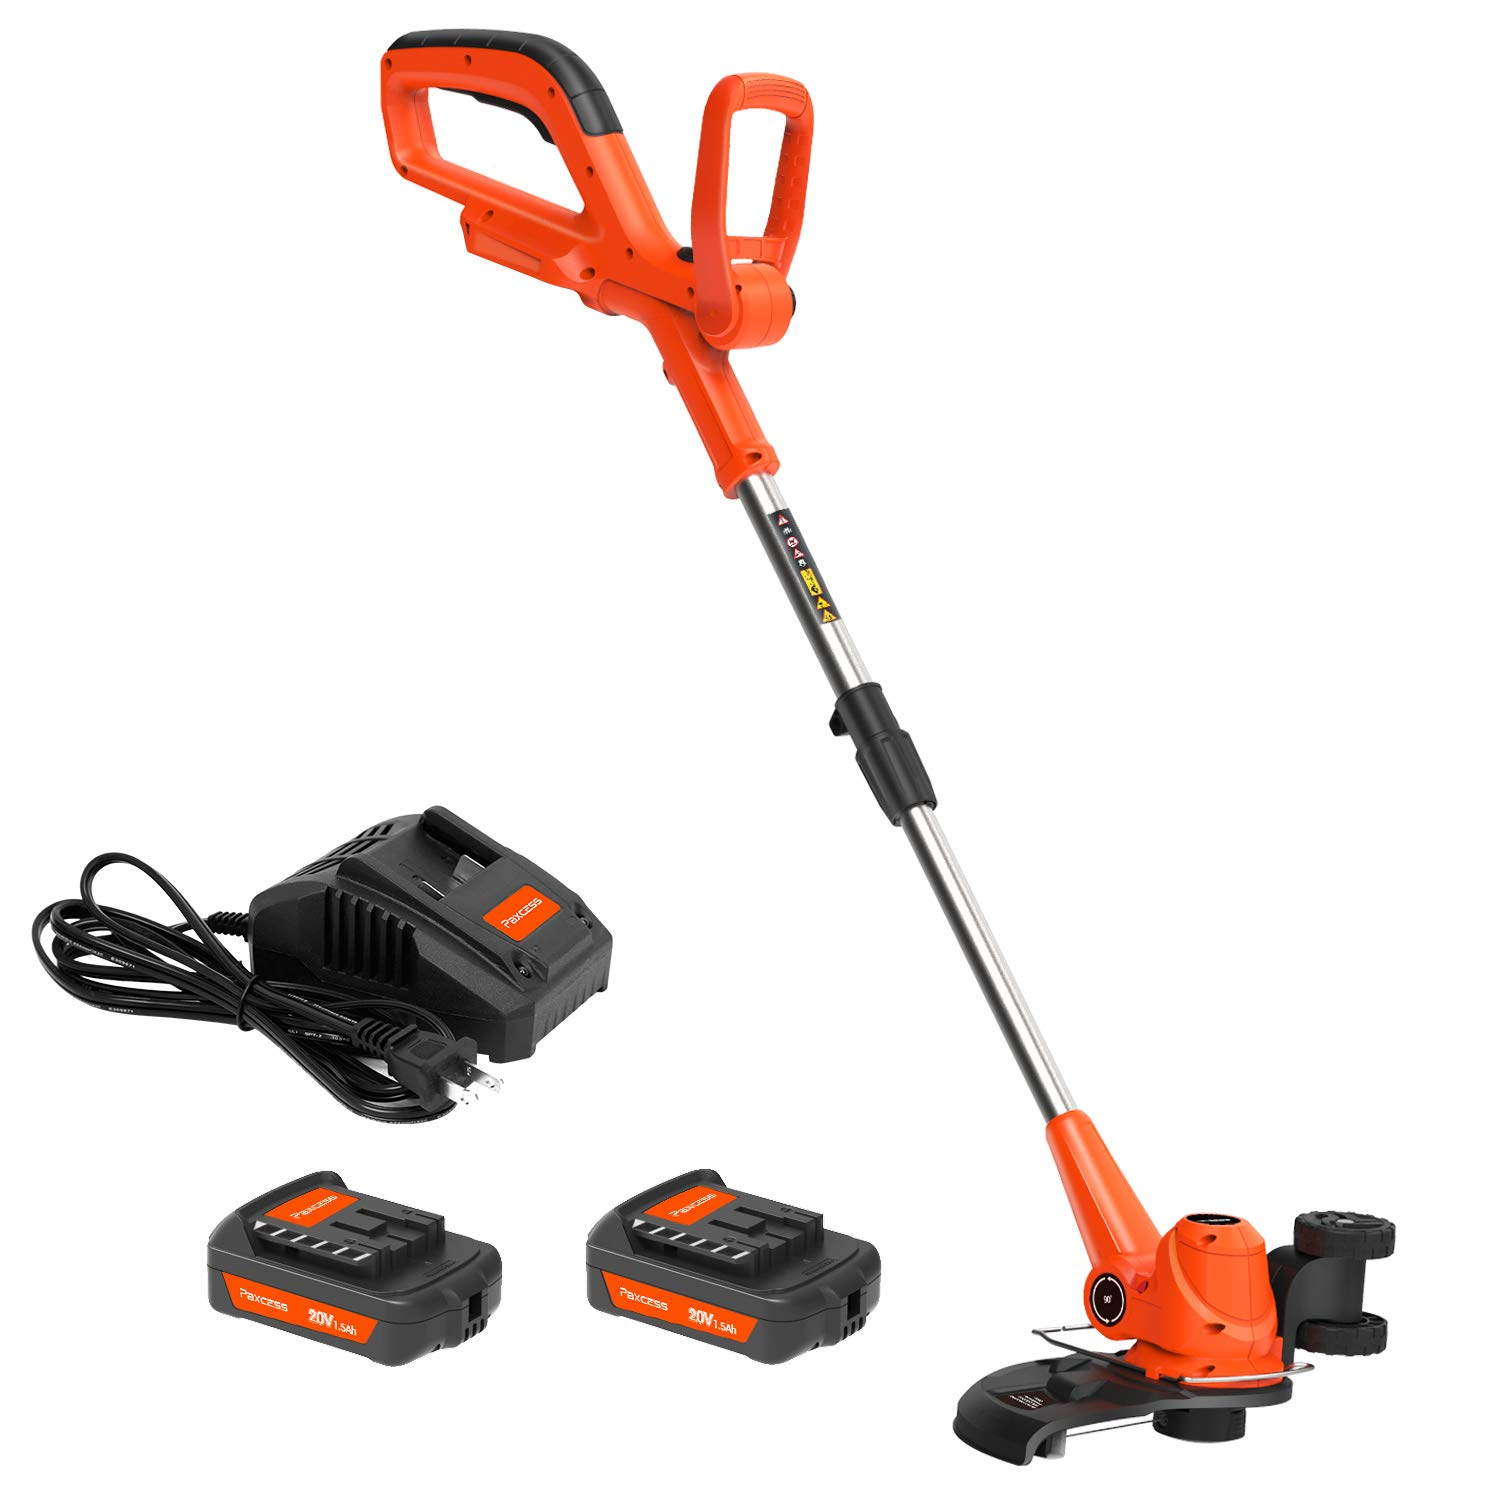 PAXCESS Cordless String Trimmer/Edger, Detachable Weed Eater with 2pcs 20V Lithium-ion Batteries,1pcs Quick Charger, Weed Whacker with Auto Feed Spool, Lightweight&Powerful , No Hassle